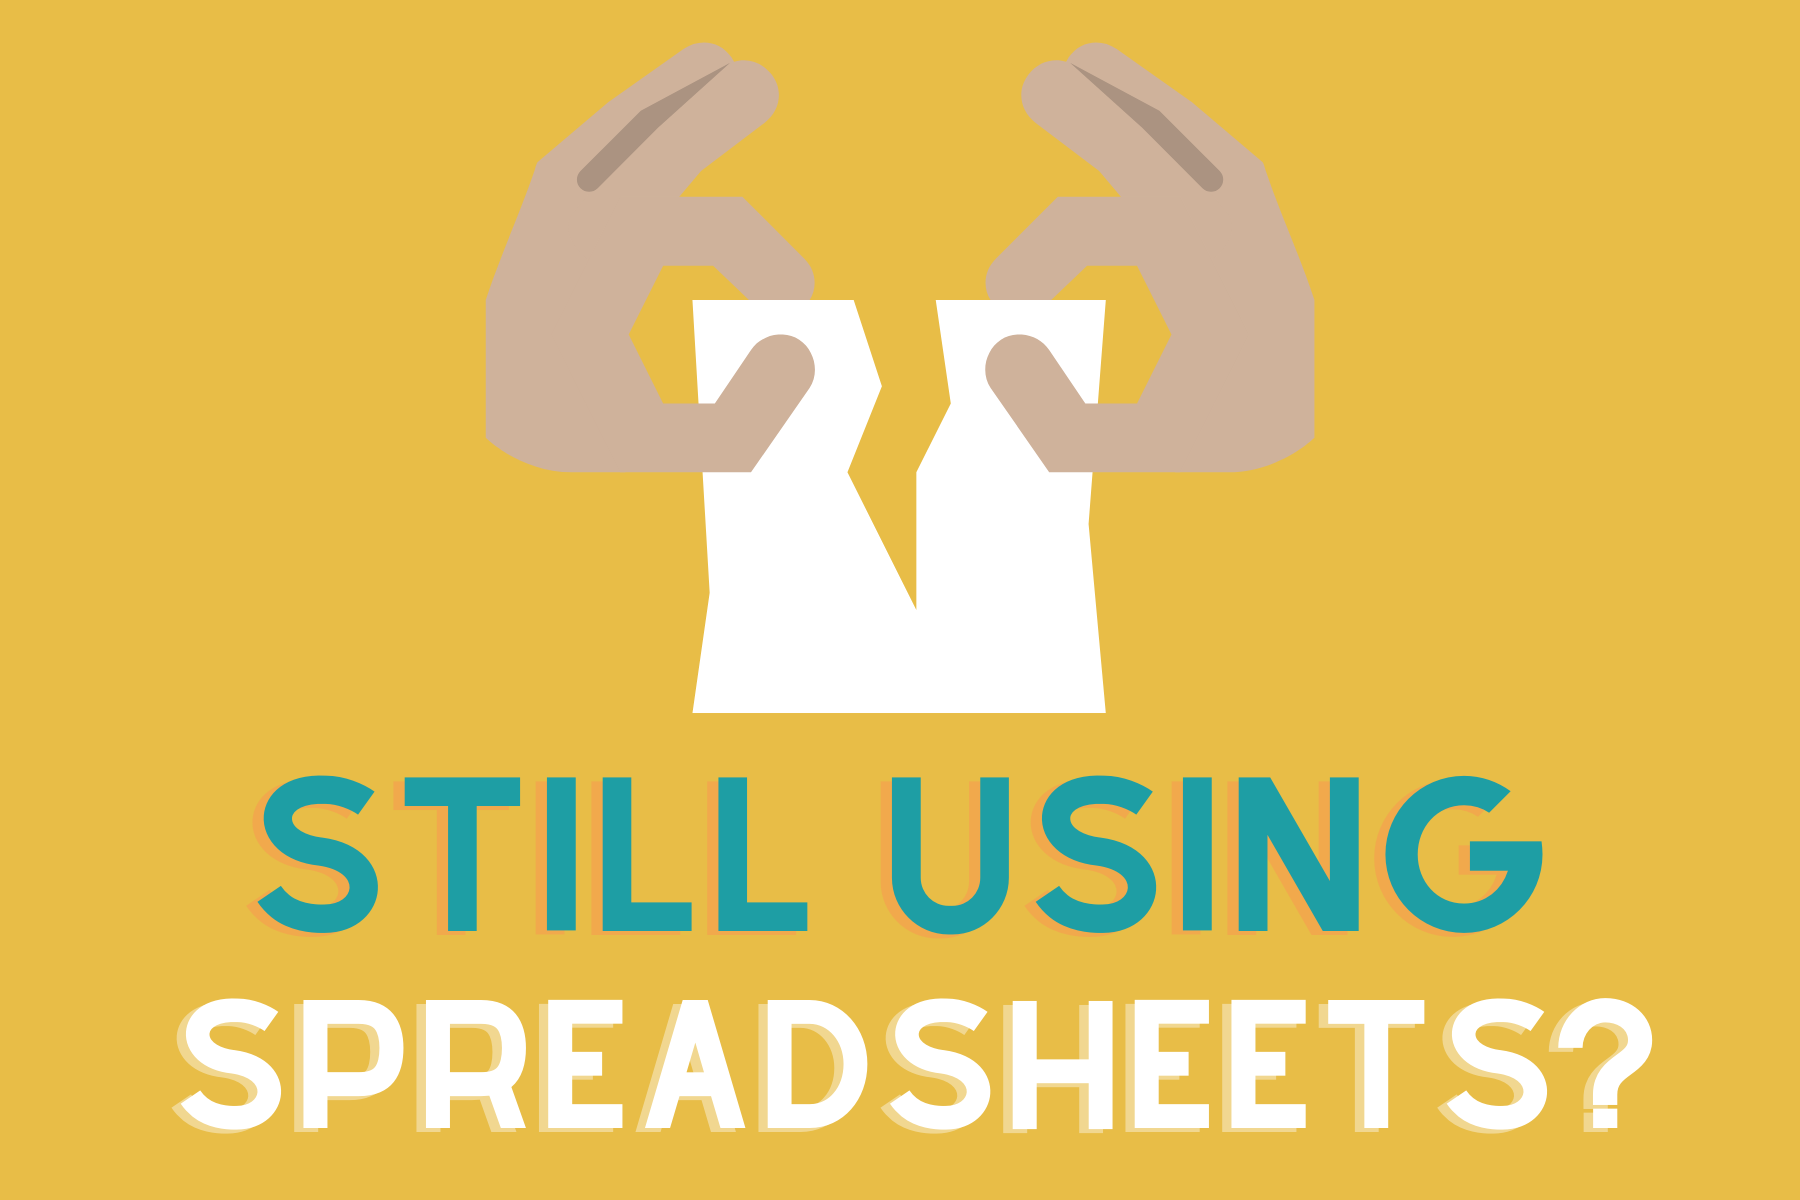 still using spreadsheets?